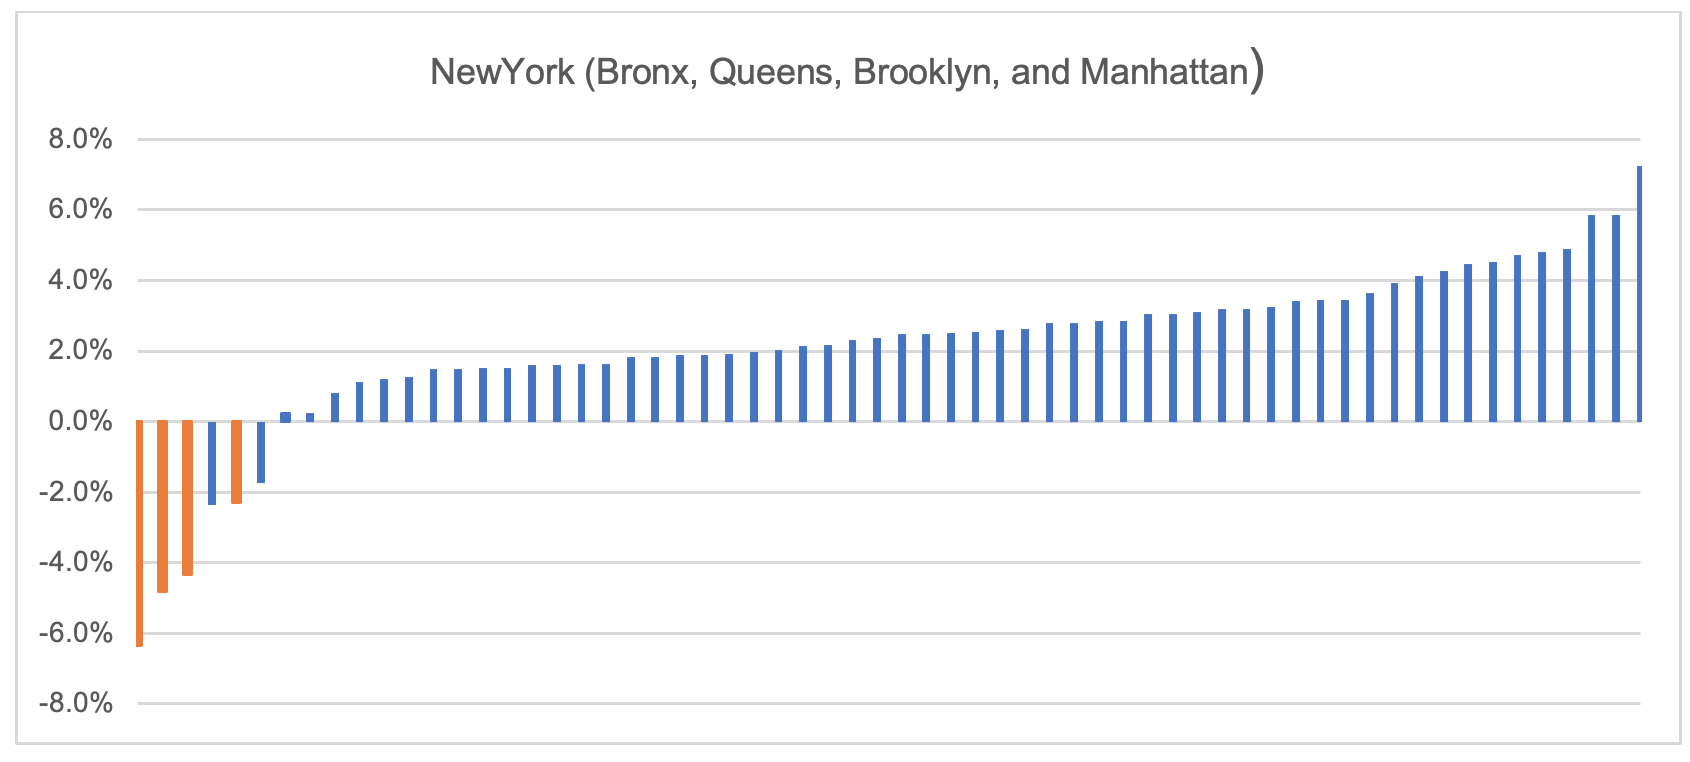 Screenshot of chart displaying the within-county change (2020 versus 2016) in Democrat party vote percentage for each New York county, with counties ranked in order of increasing within-county change (Seth Kalkala) spectator.org